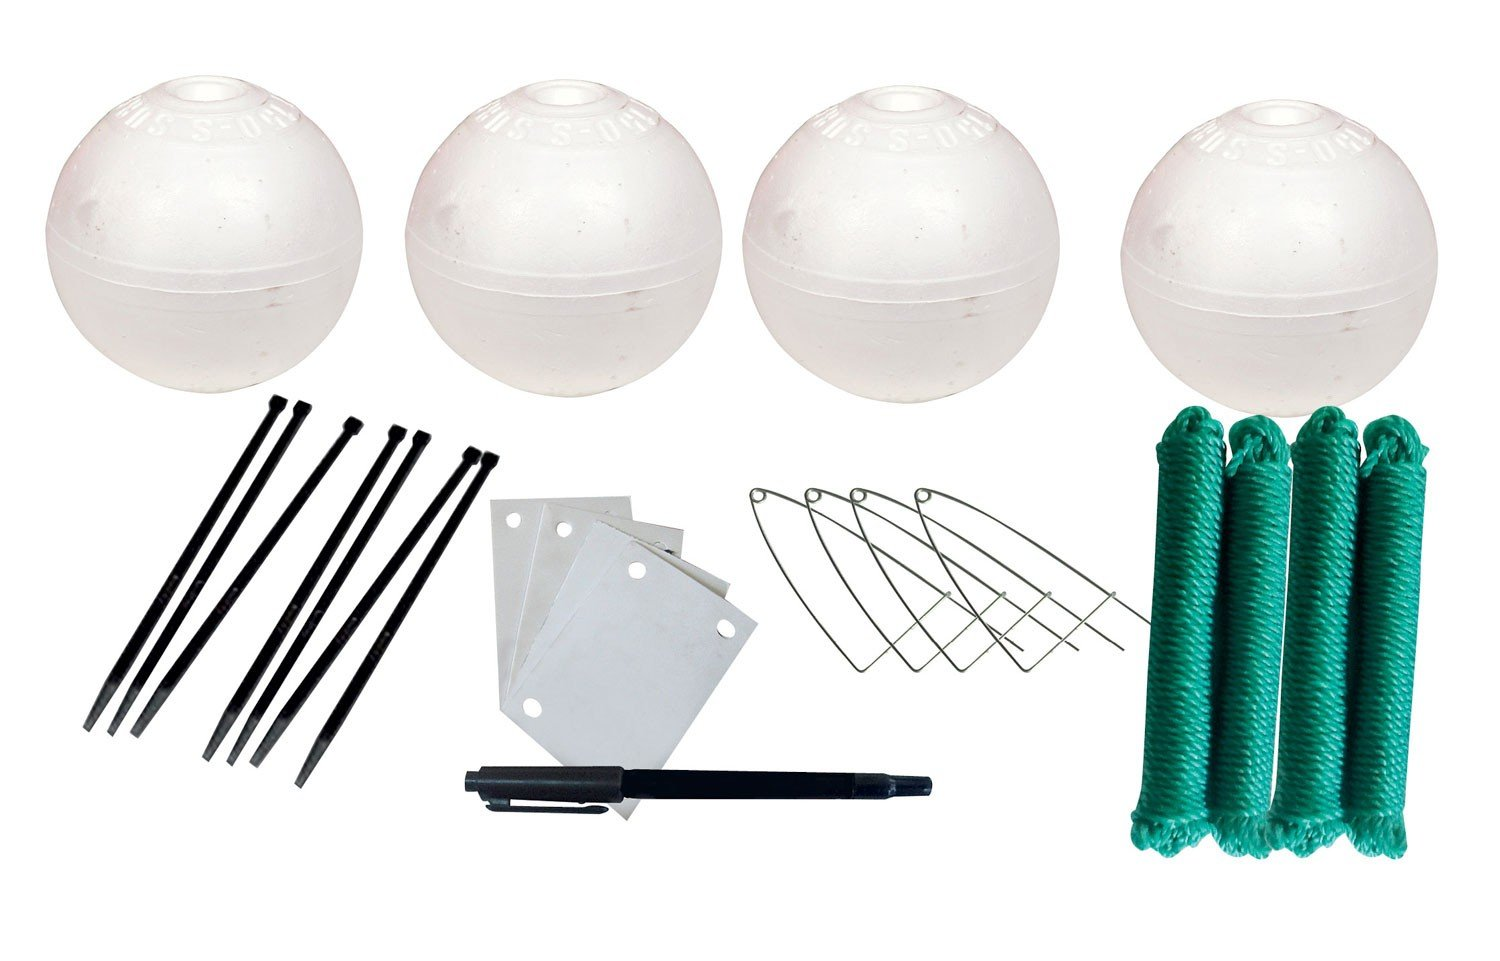 Net Factory 100mm Crabbing Accessory Kit - Medium